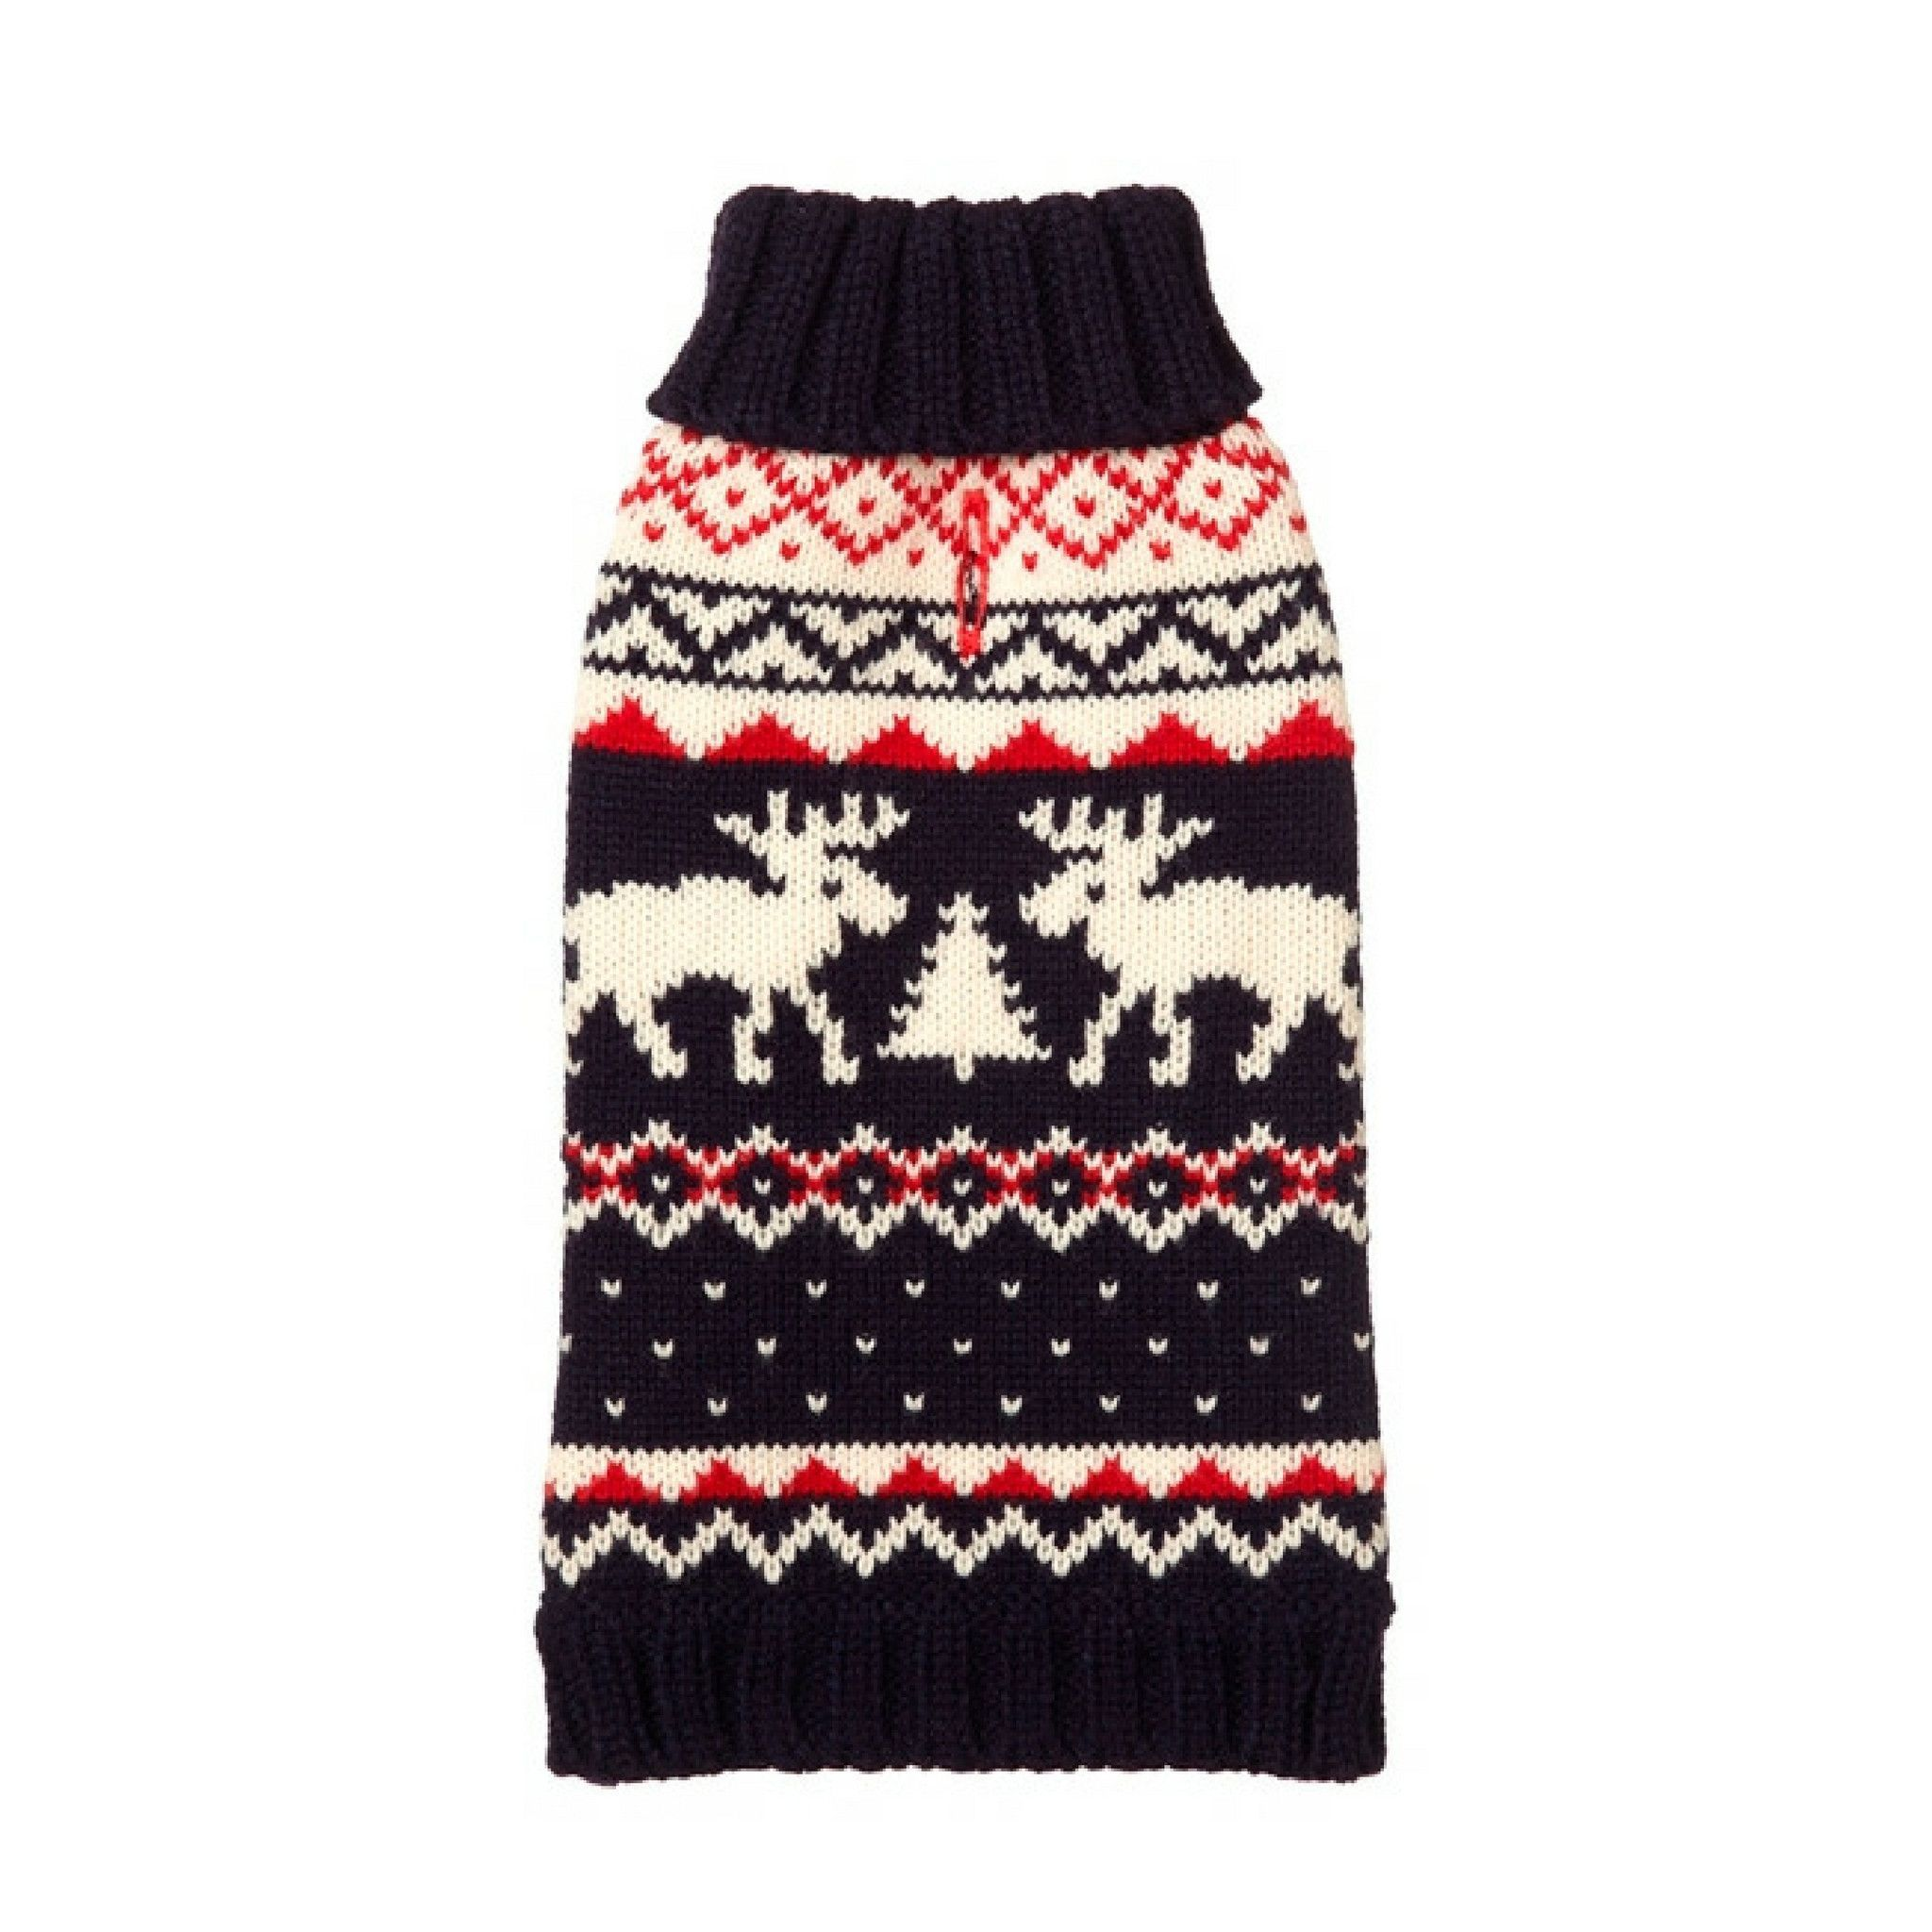 Fair Isle Classic Dog Sweater | More Fair isles ideas